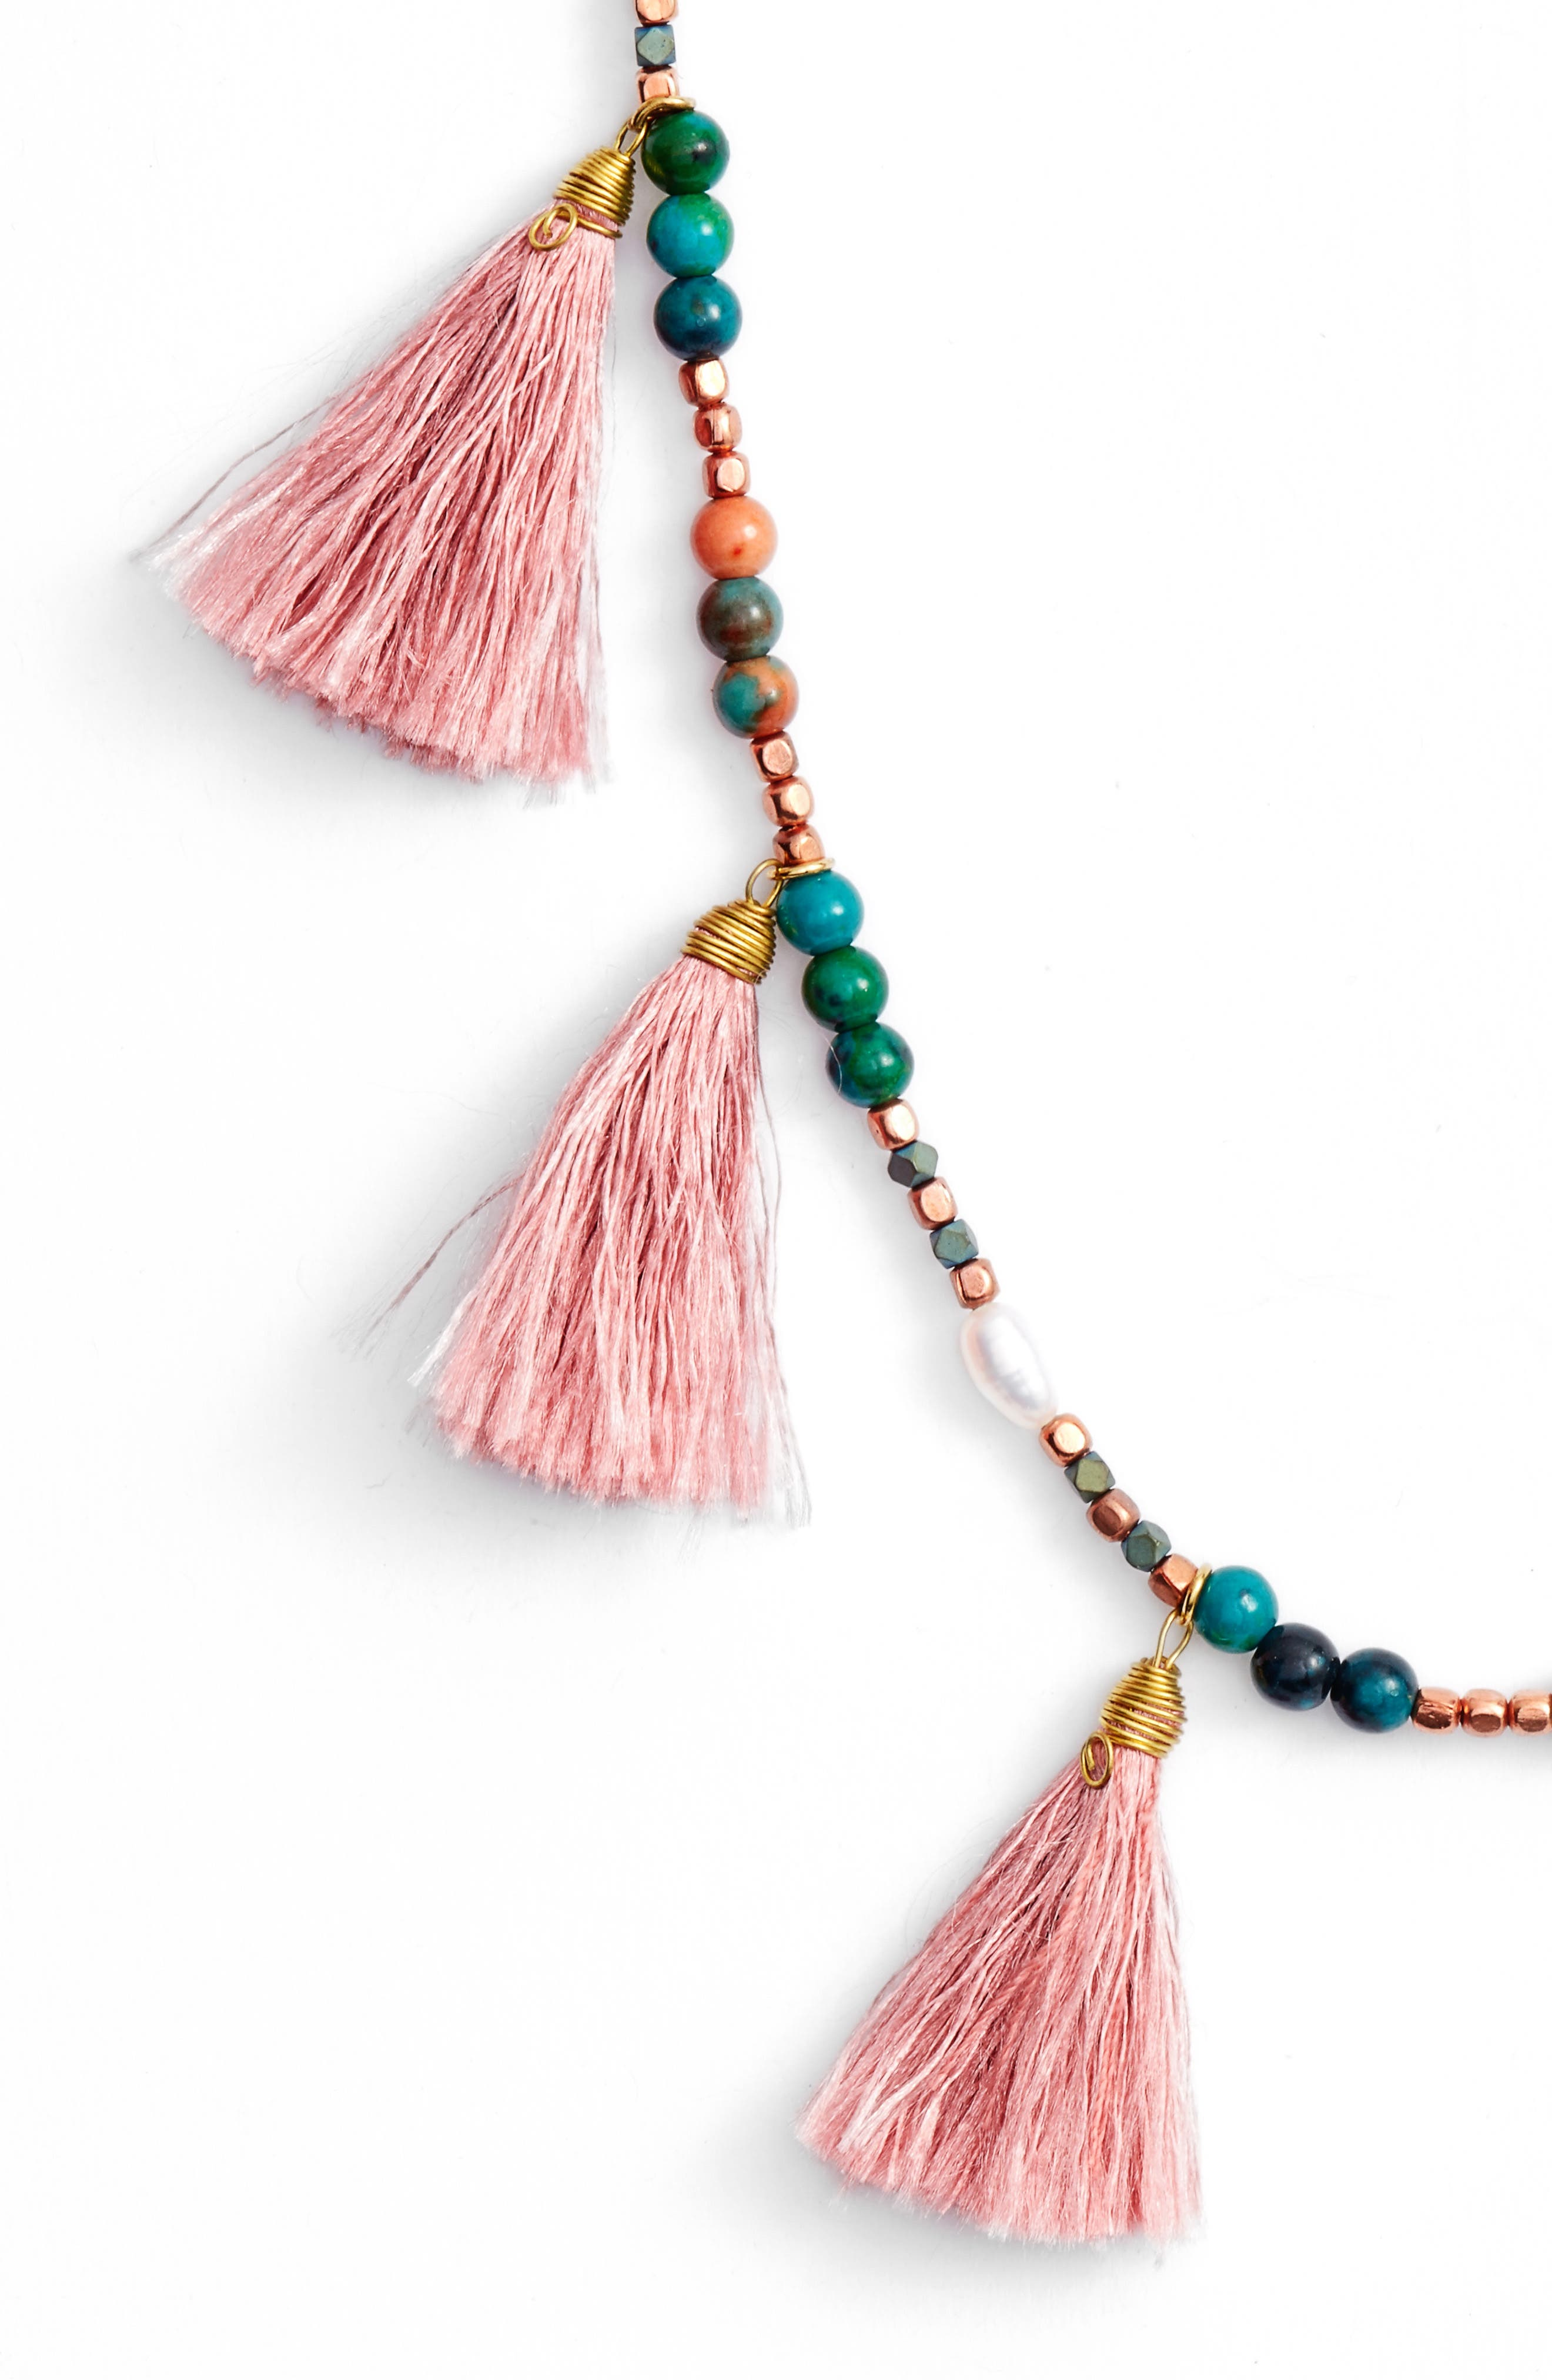 Tiny Tassel Beaded Necklace,                             Alternate thumbnail 2, color,                             420